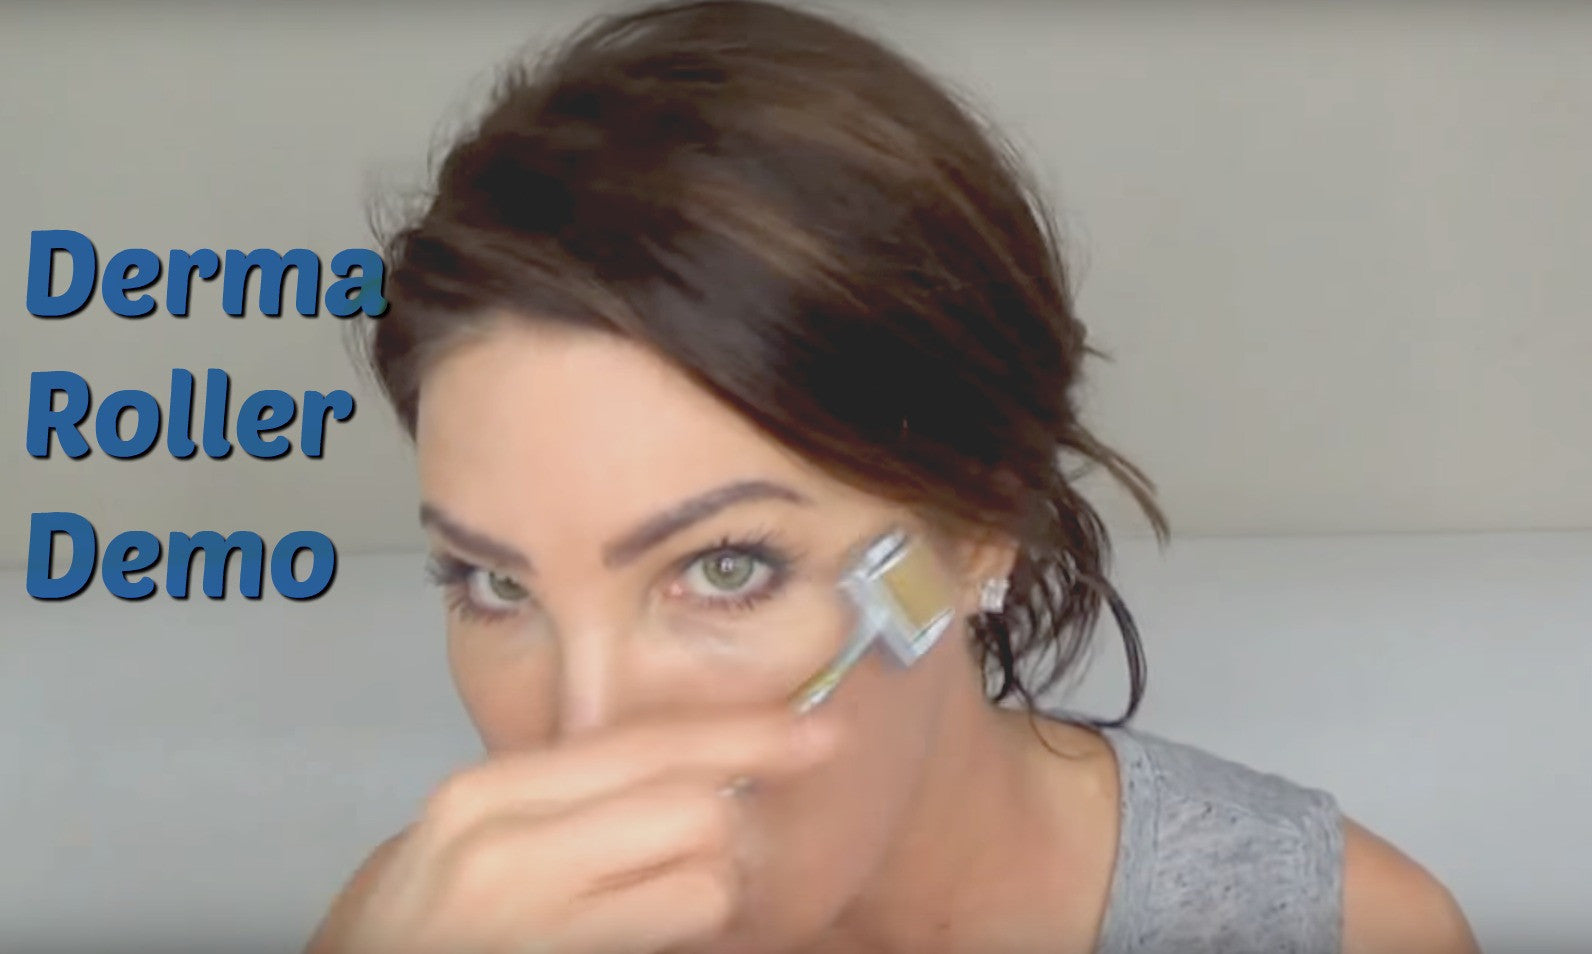 How to Use Derma Roller Videos